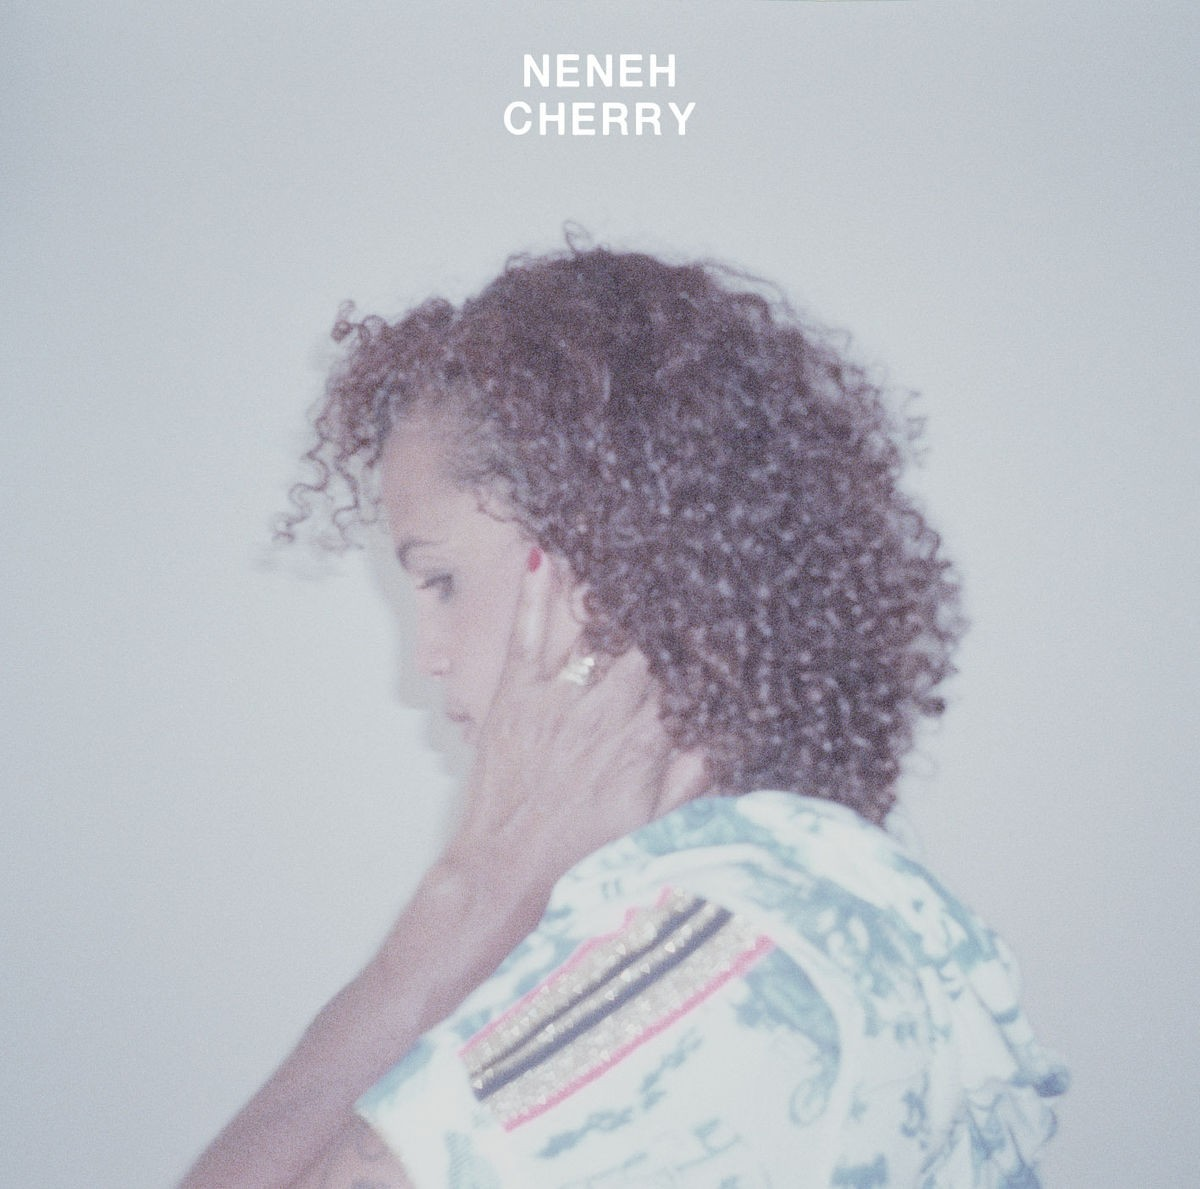 Neneh Cherry - Blank Project CD - STS 248CD